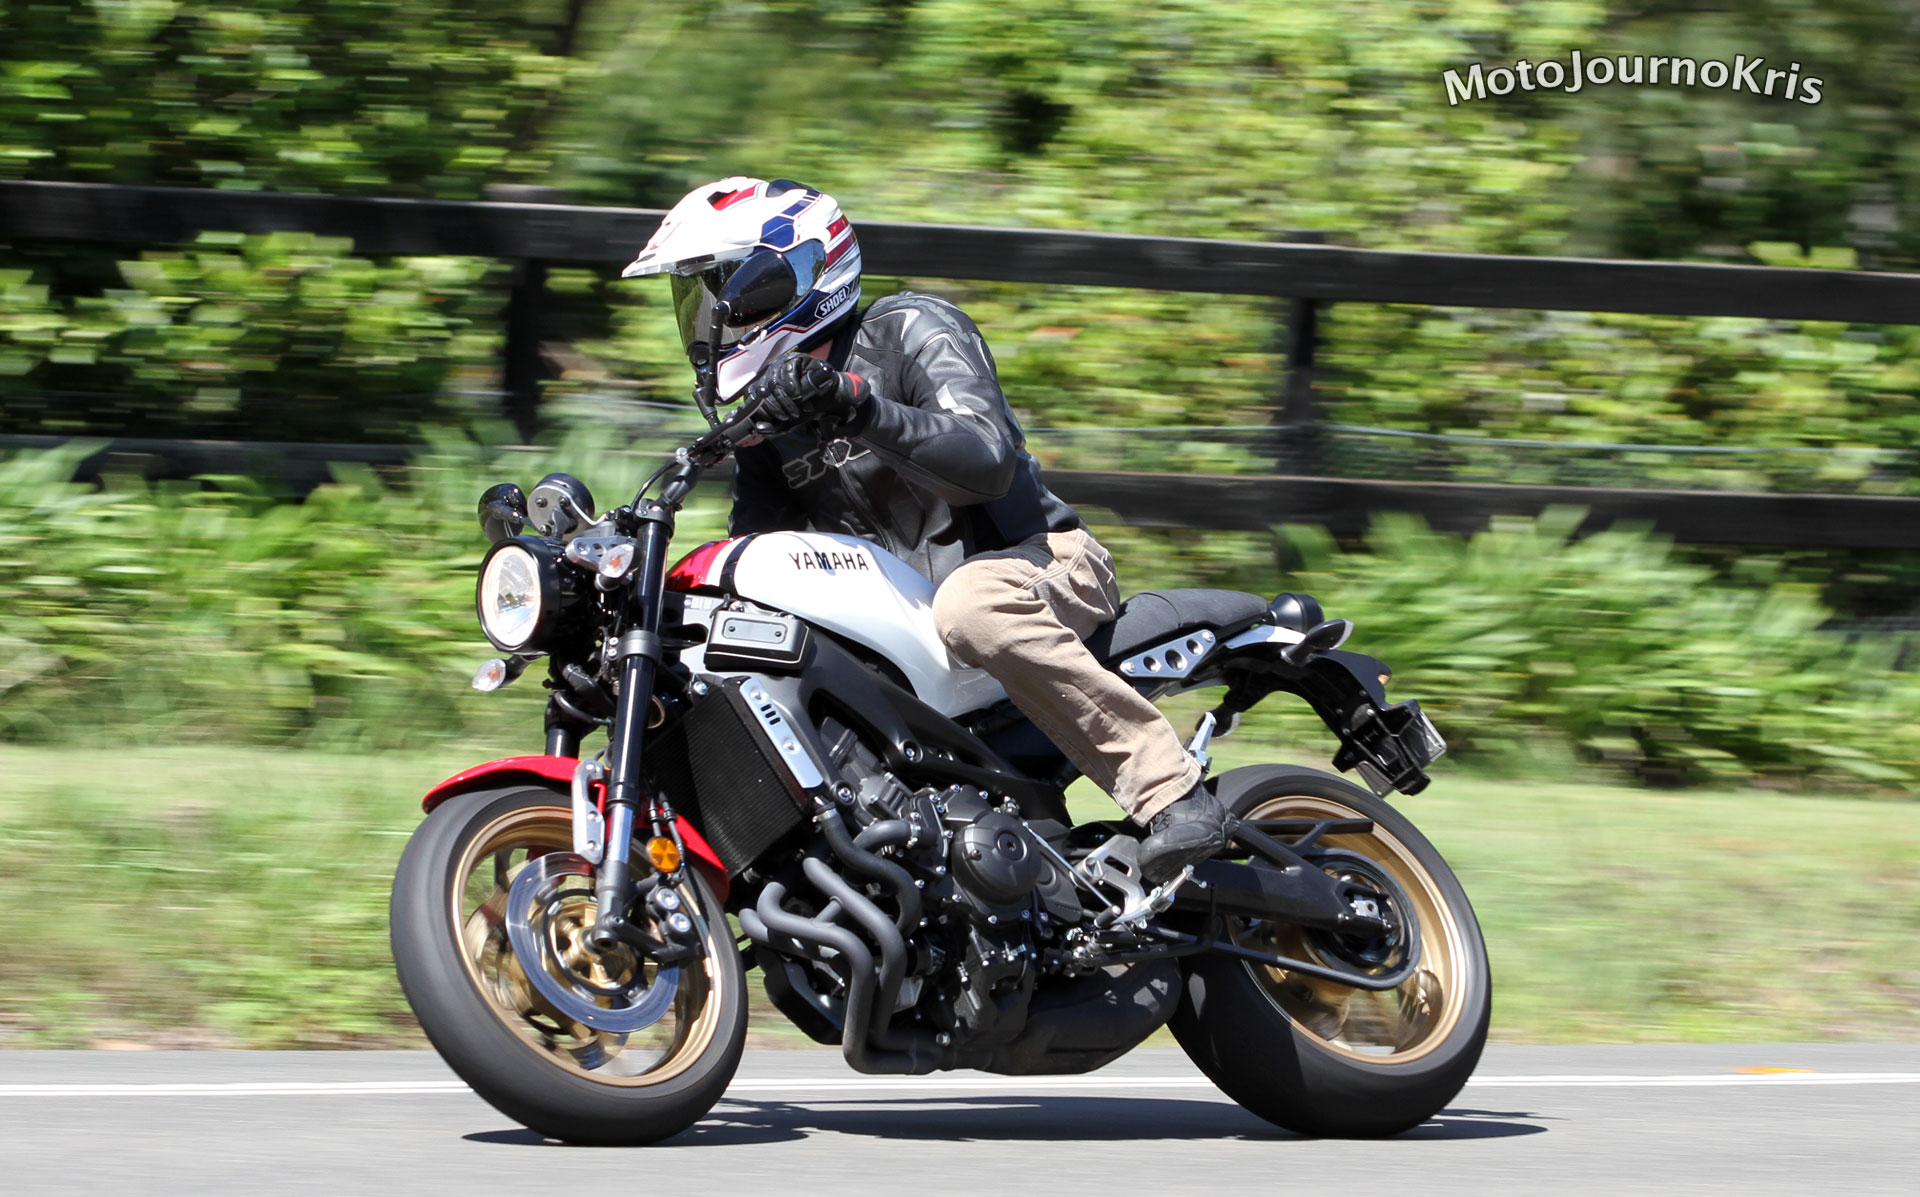 2020 Yamaha XSR900 Motorcycle Review